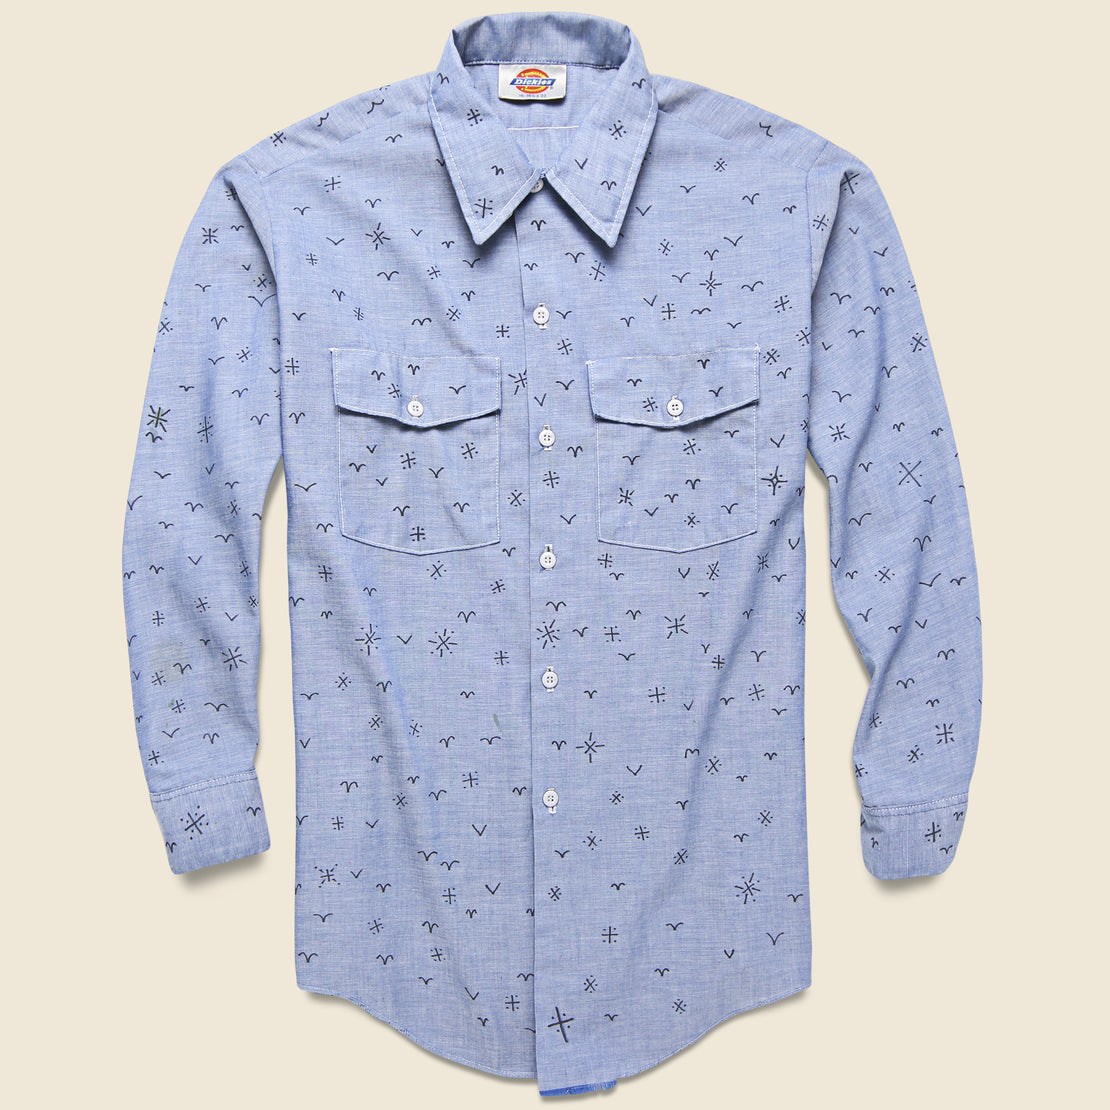 Tom Jean Webb Vintage Dickies Chambray Shirt - Icons